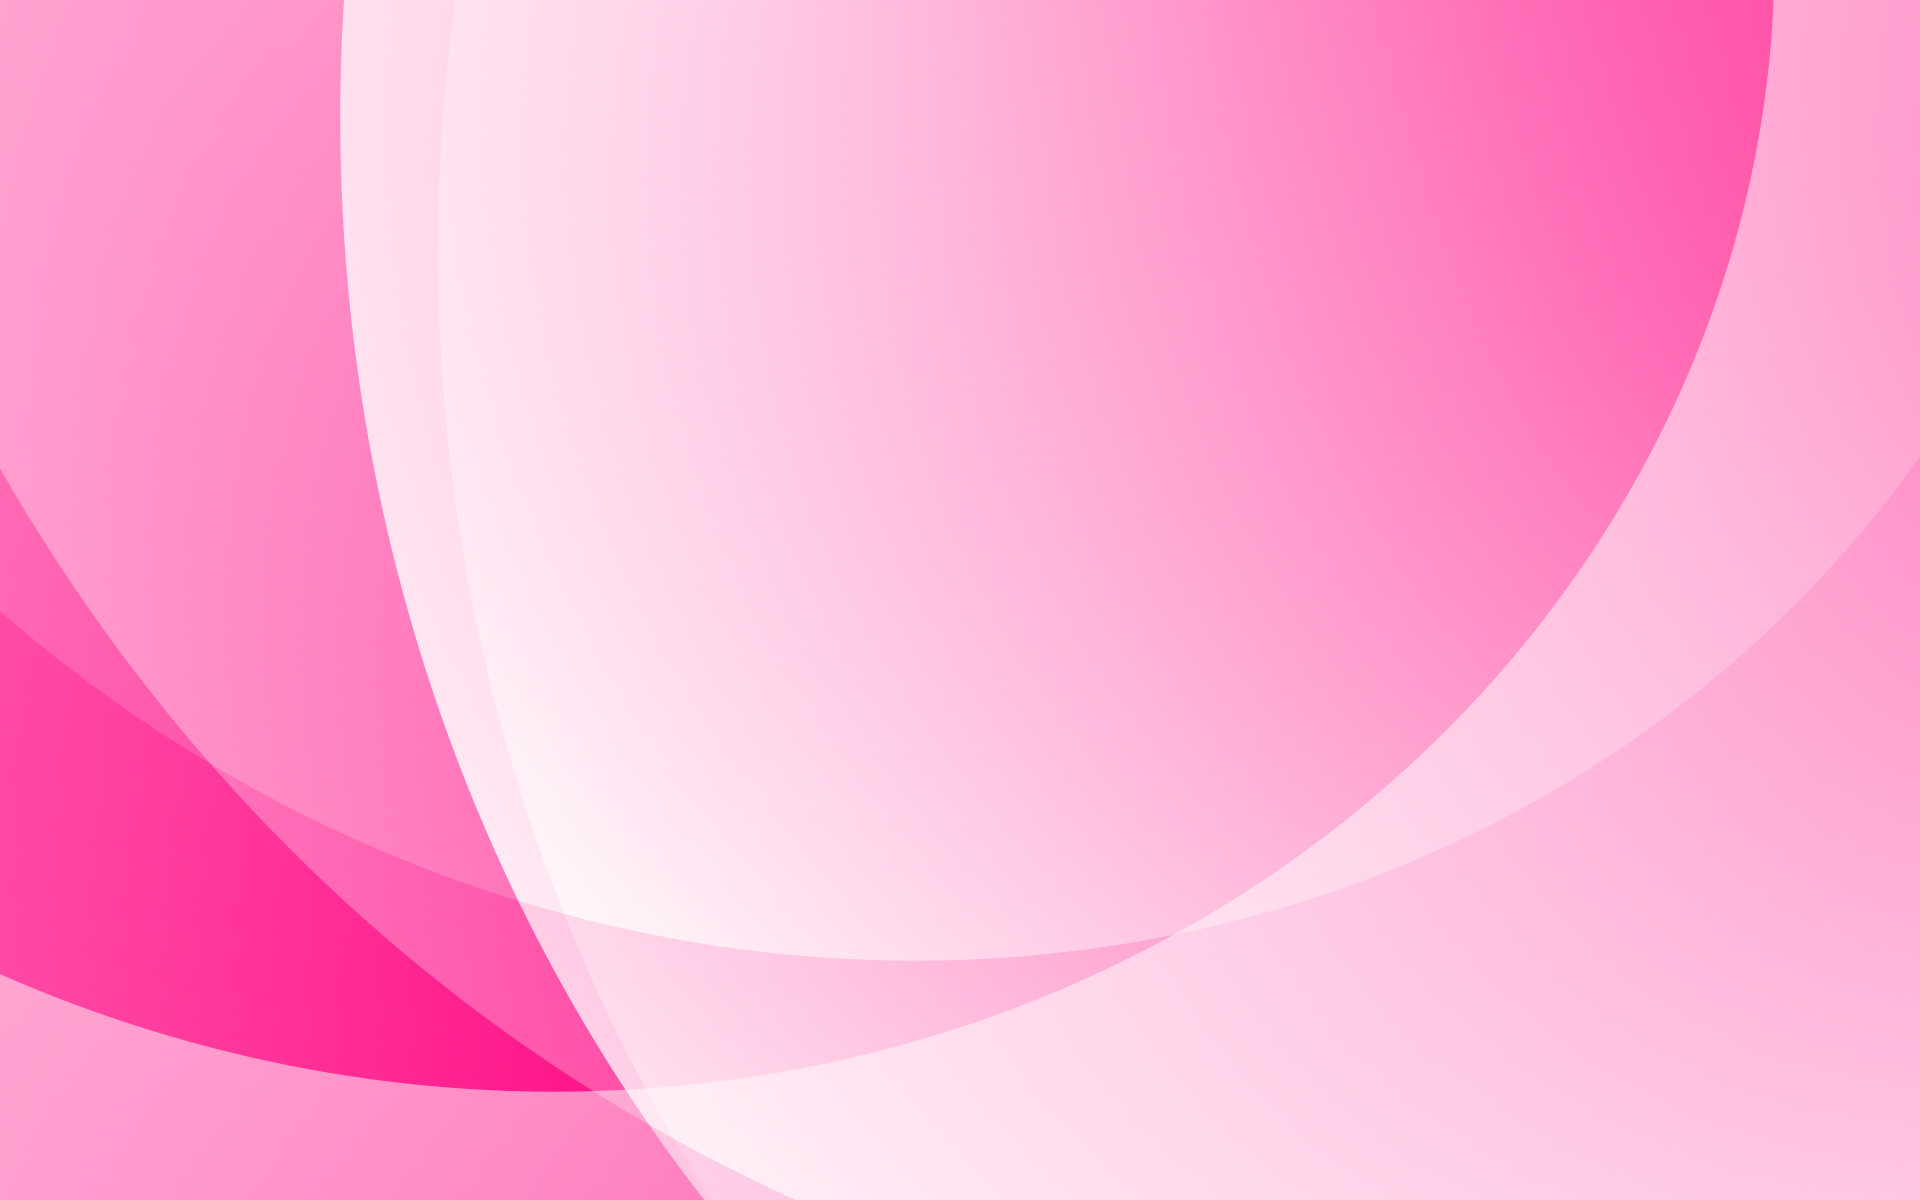 Pink Abstract Wallpaper - WallpaperSafari